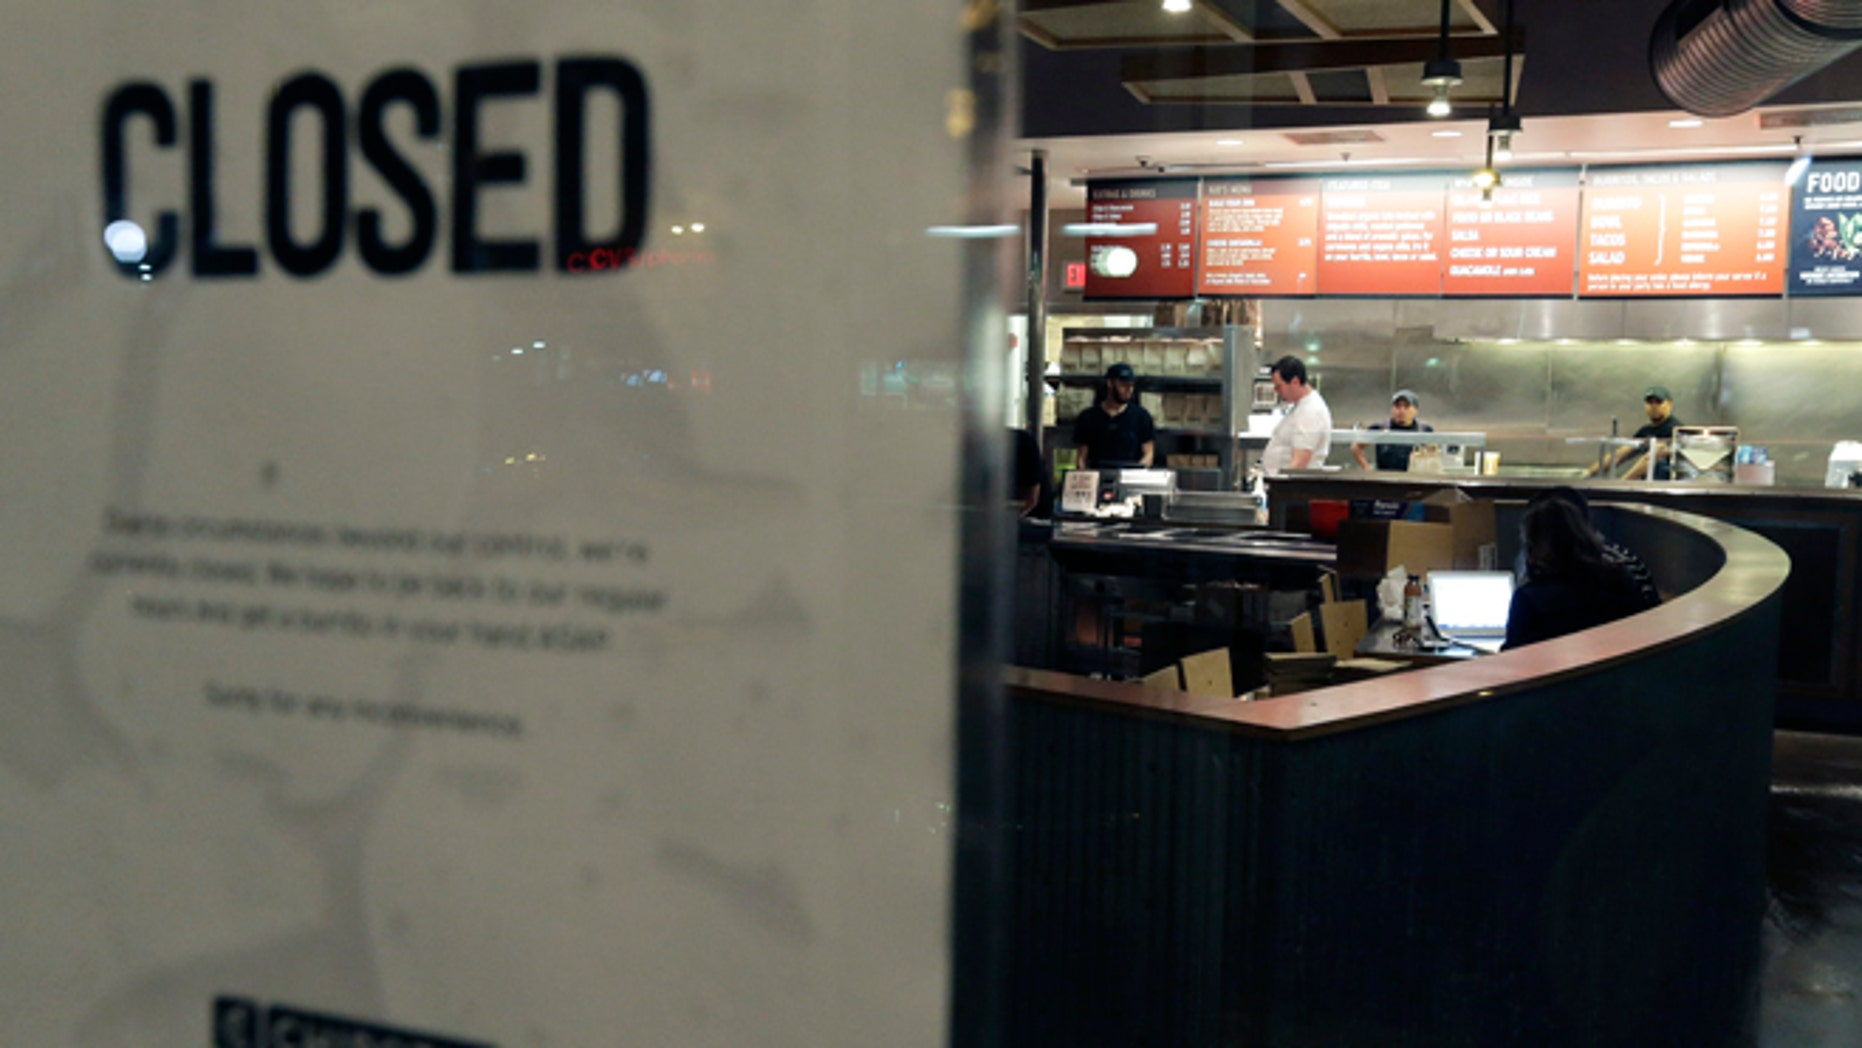 People stand inside a closed Chipotle restaurant on Monday, Dec. 7, 2015, in the Cleveland Circle neighborhood of Boston. Chipotle said late Monday that it closed the restaurant after several students at Boston College, including members of the mens basketball team, reported gastrointestinal symptoms after eating at the chain. The school said it was working with local health officials to determine the cause of the illness. (AP Photo/Steven Senne)